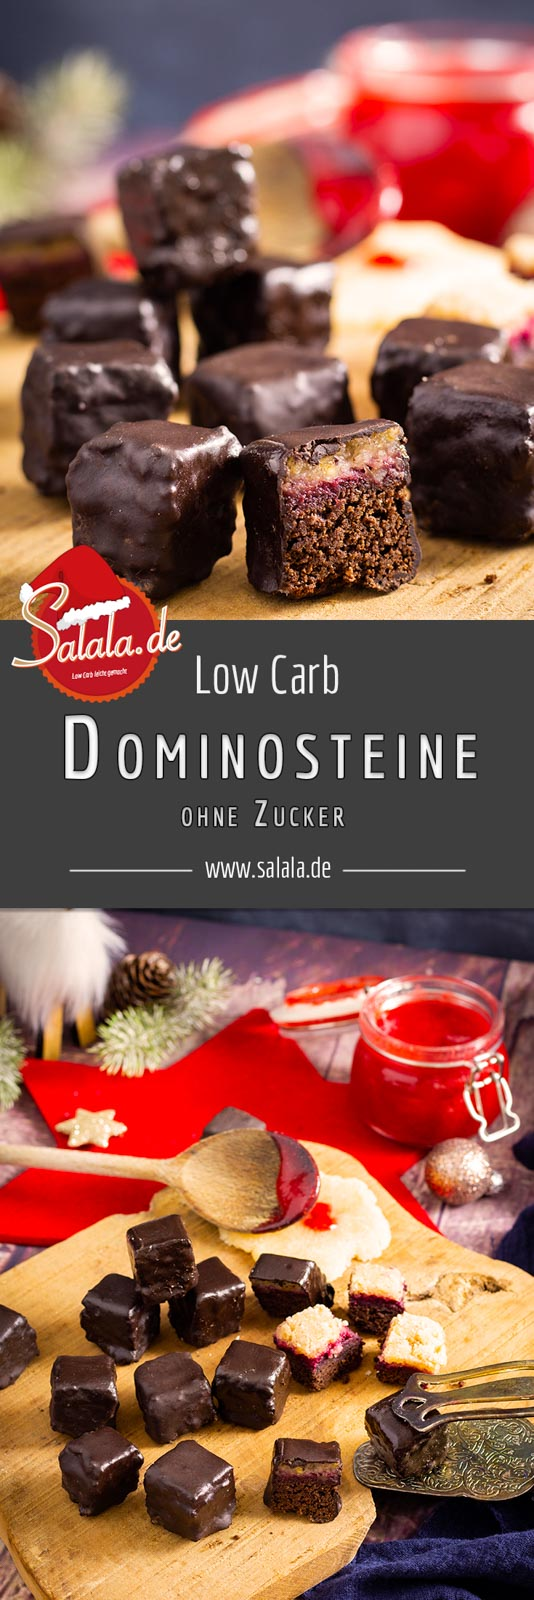 #Dominosteine #LowCarb #DominosteineSelberMachen #DominosteineRezept #LowCarbRezepte #LowCarbBacken #DomionosteineOhneMehl #DominosteineOhneZucker